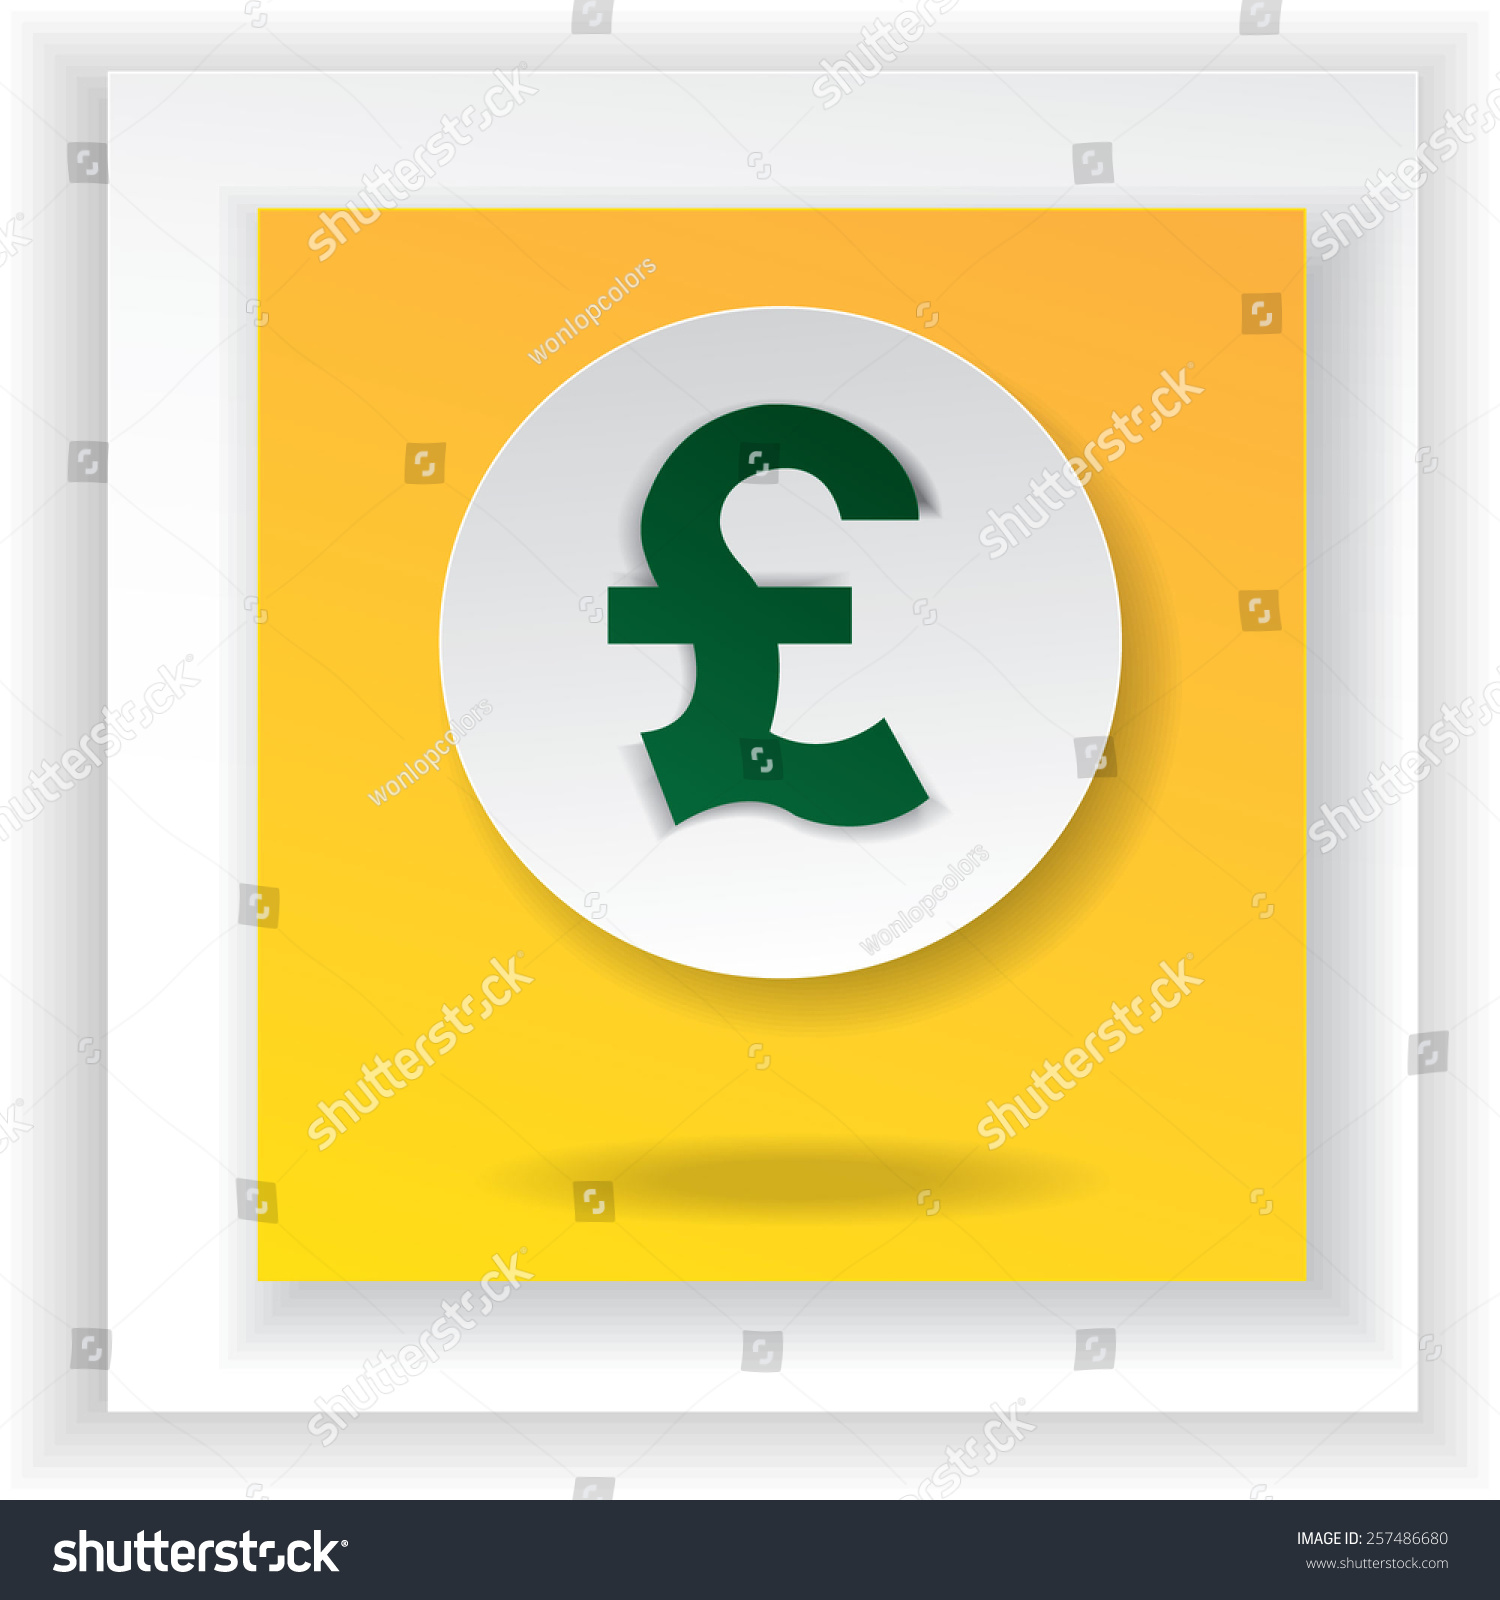 British Uk Pounds Currency Symbol Illustration Stock Vector 2018